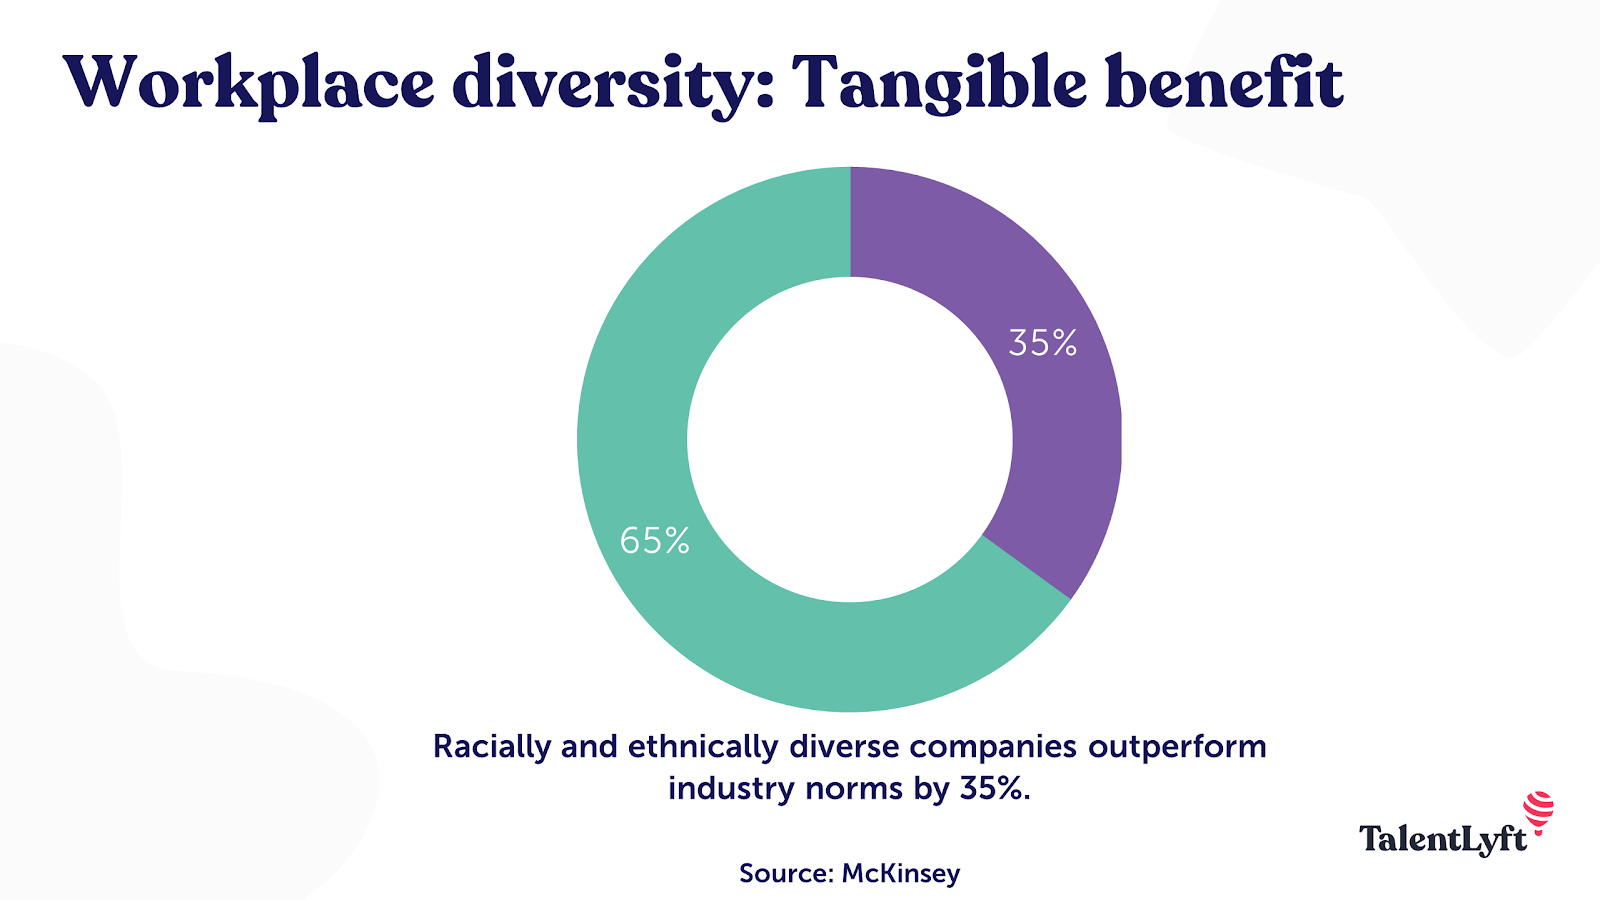 Workplace diversity benefit statistic